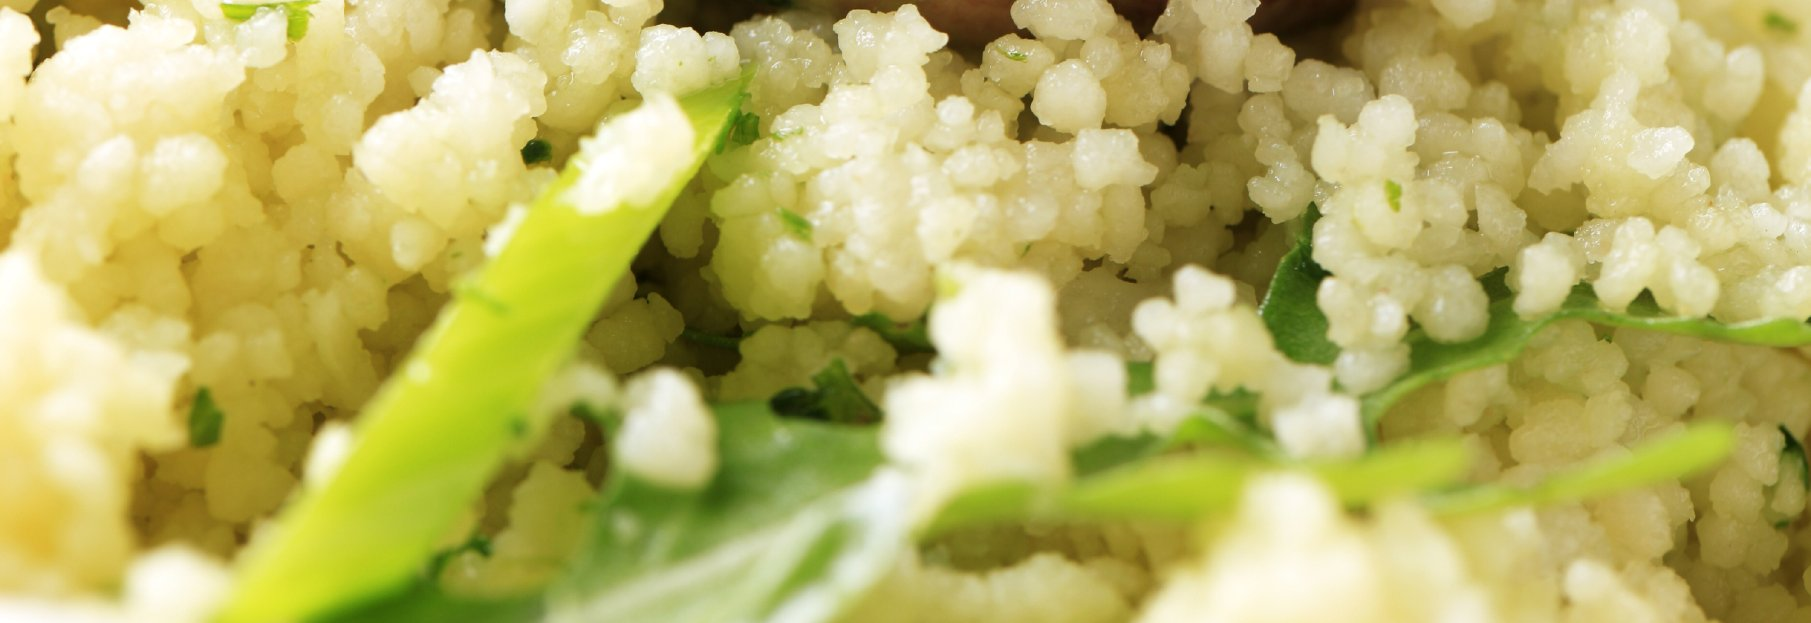 couscous_with_scallions_and_parsley_crop